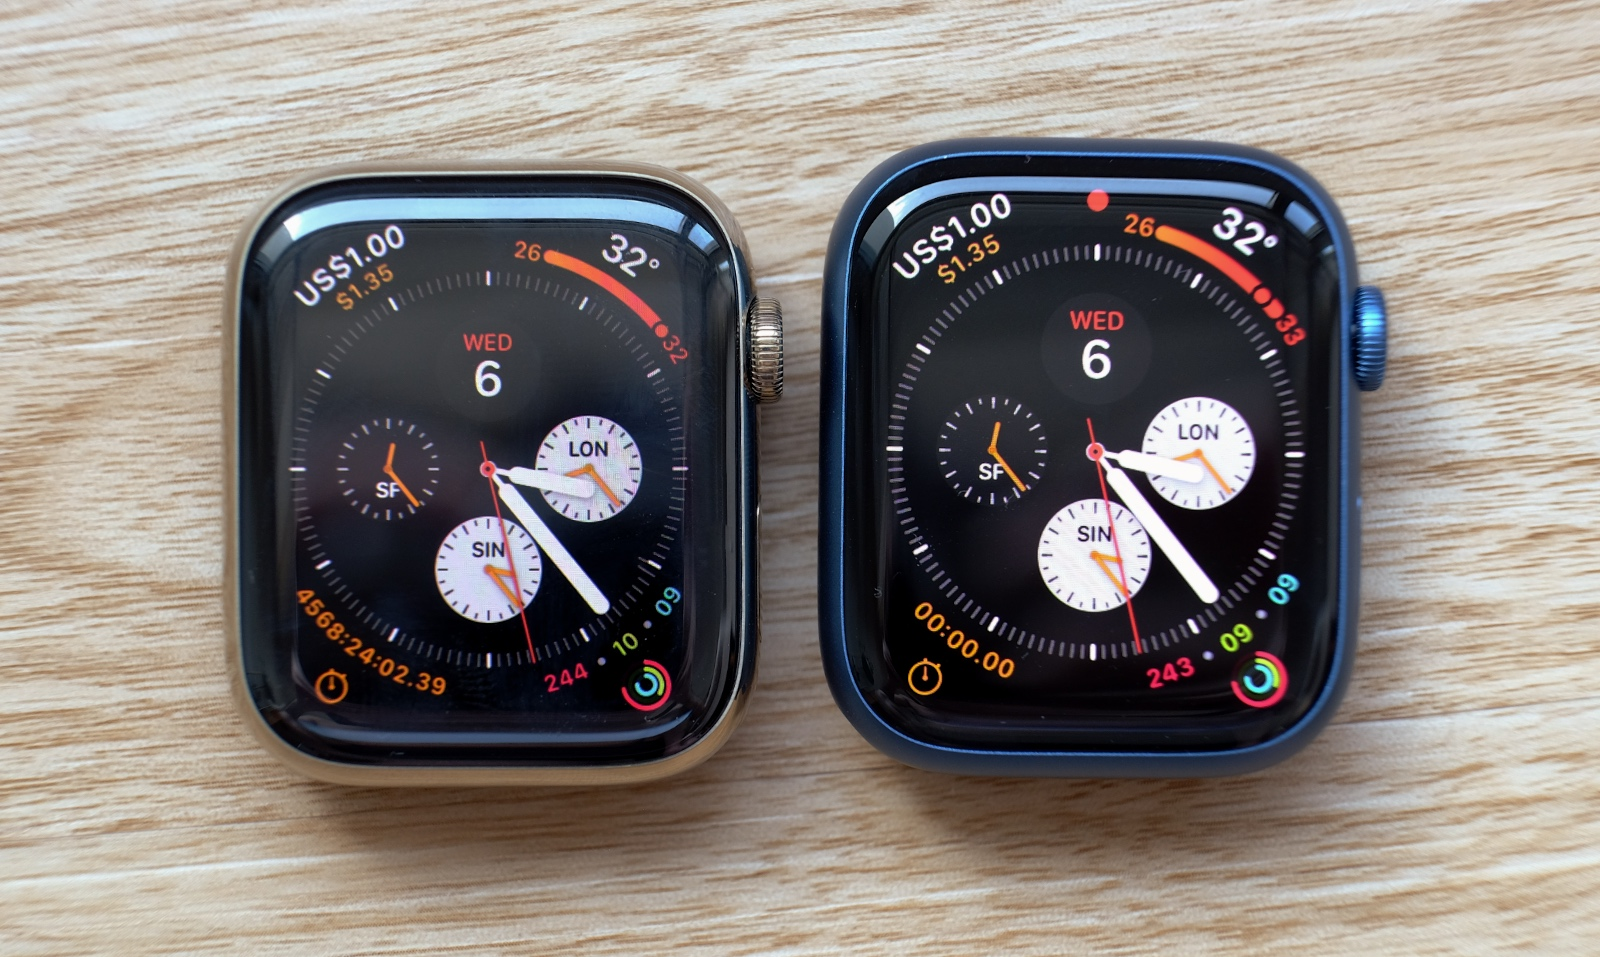 On the left is last year's 44mm Series 6 and on the right is the new Series 7.